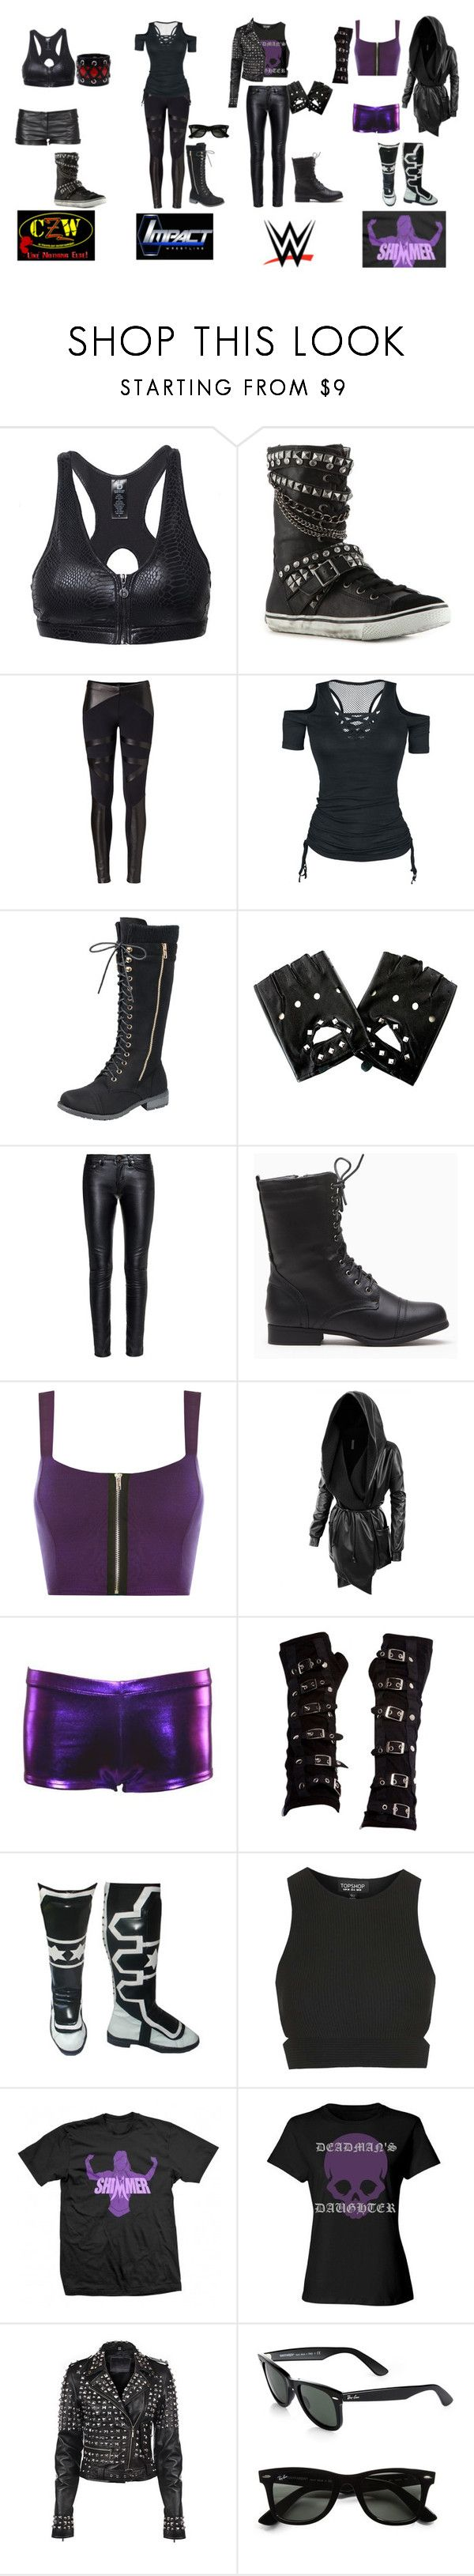 """Meg's Ring Gear"" by shooting-starchild ❤ liked on Polyvore featuring Rock & Candy, David Lerner, Rock Rebel, TNA, Yves Saint Laurent, WWE, WearAll, LE3NO, Poizen Industries and Topshop"